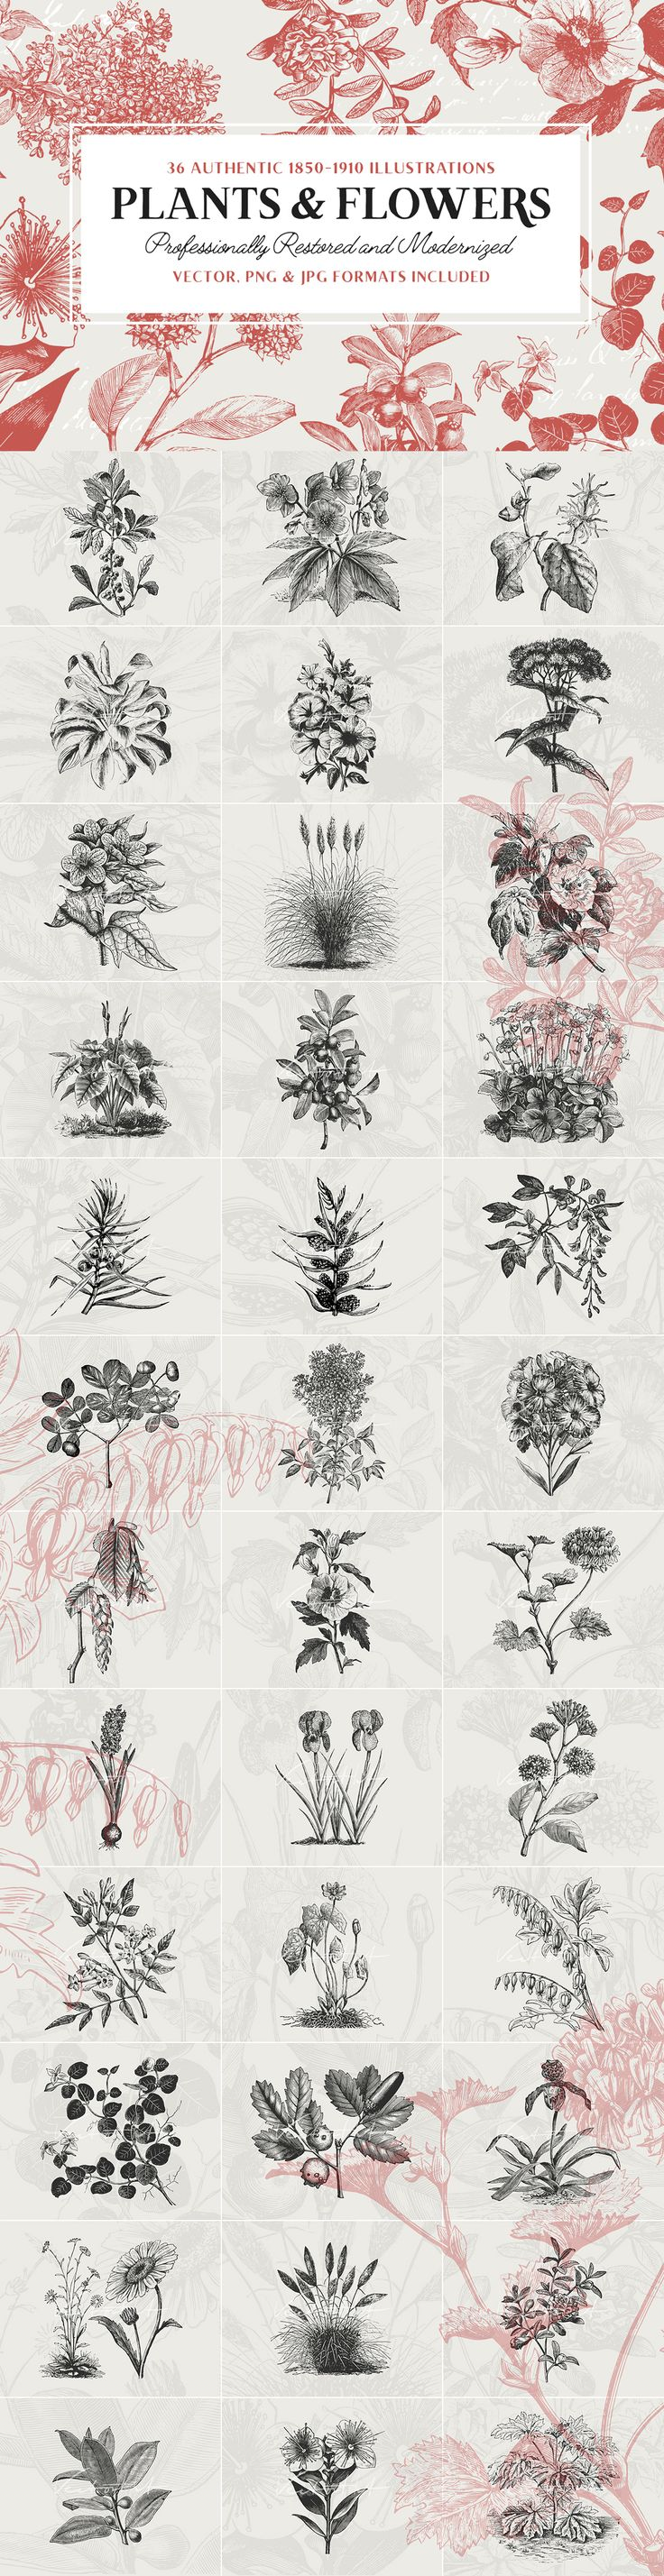 36 Plant & Flower Illustrations by Vector Hut on @creativemarket